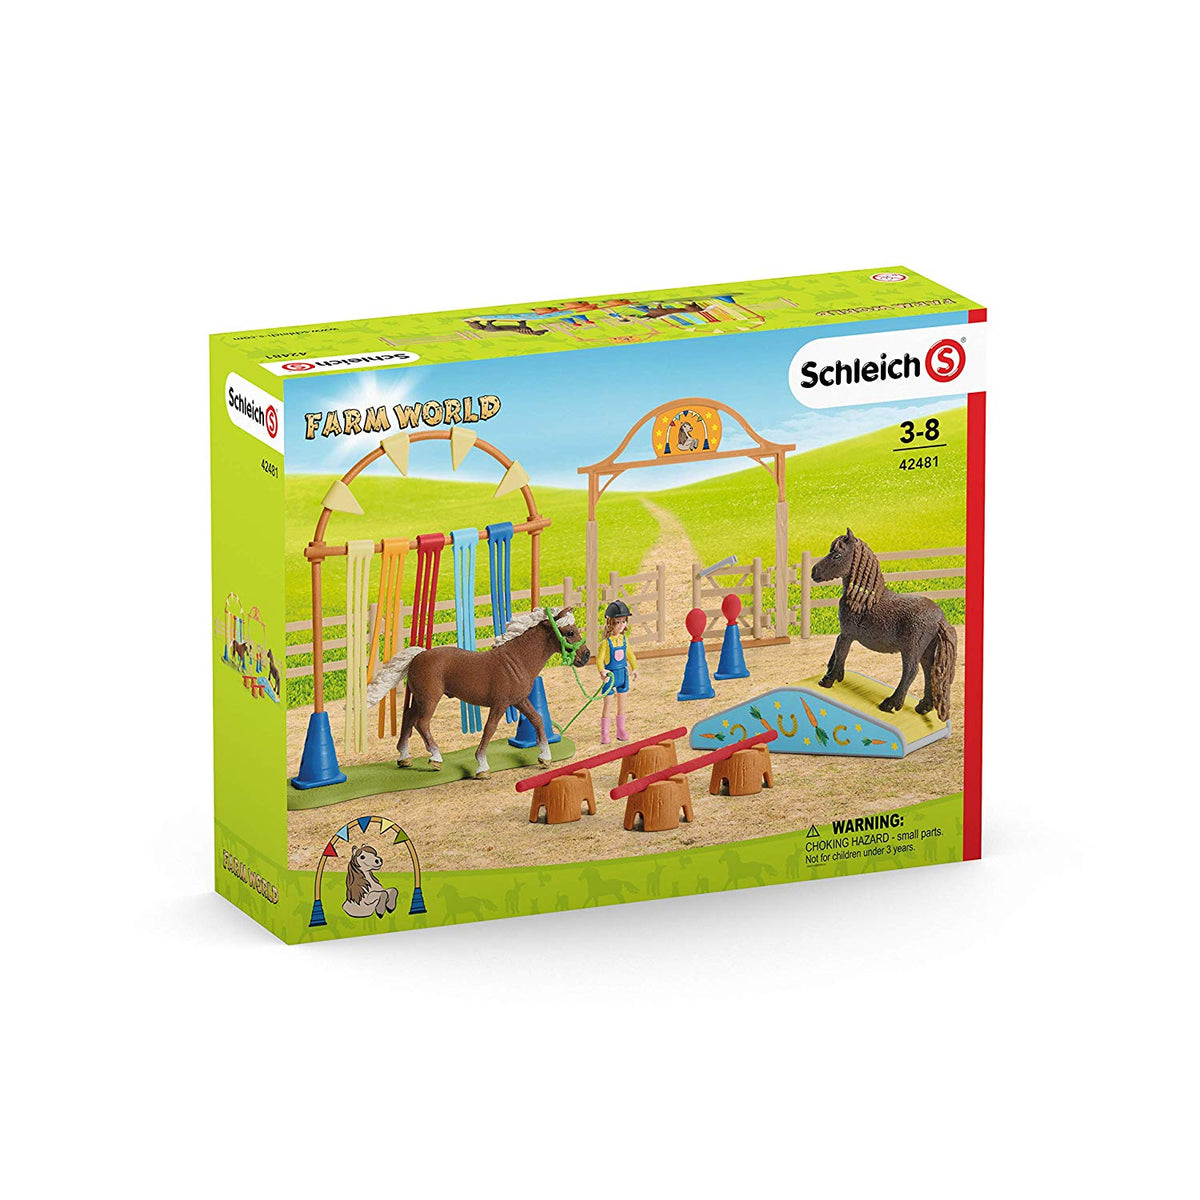 Pony Agility Training (Schleich) [42481]